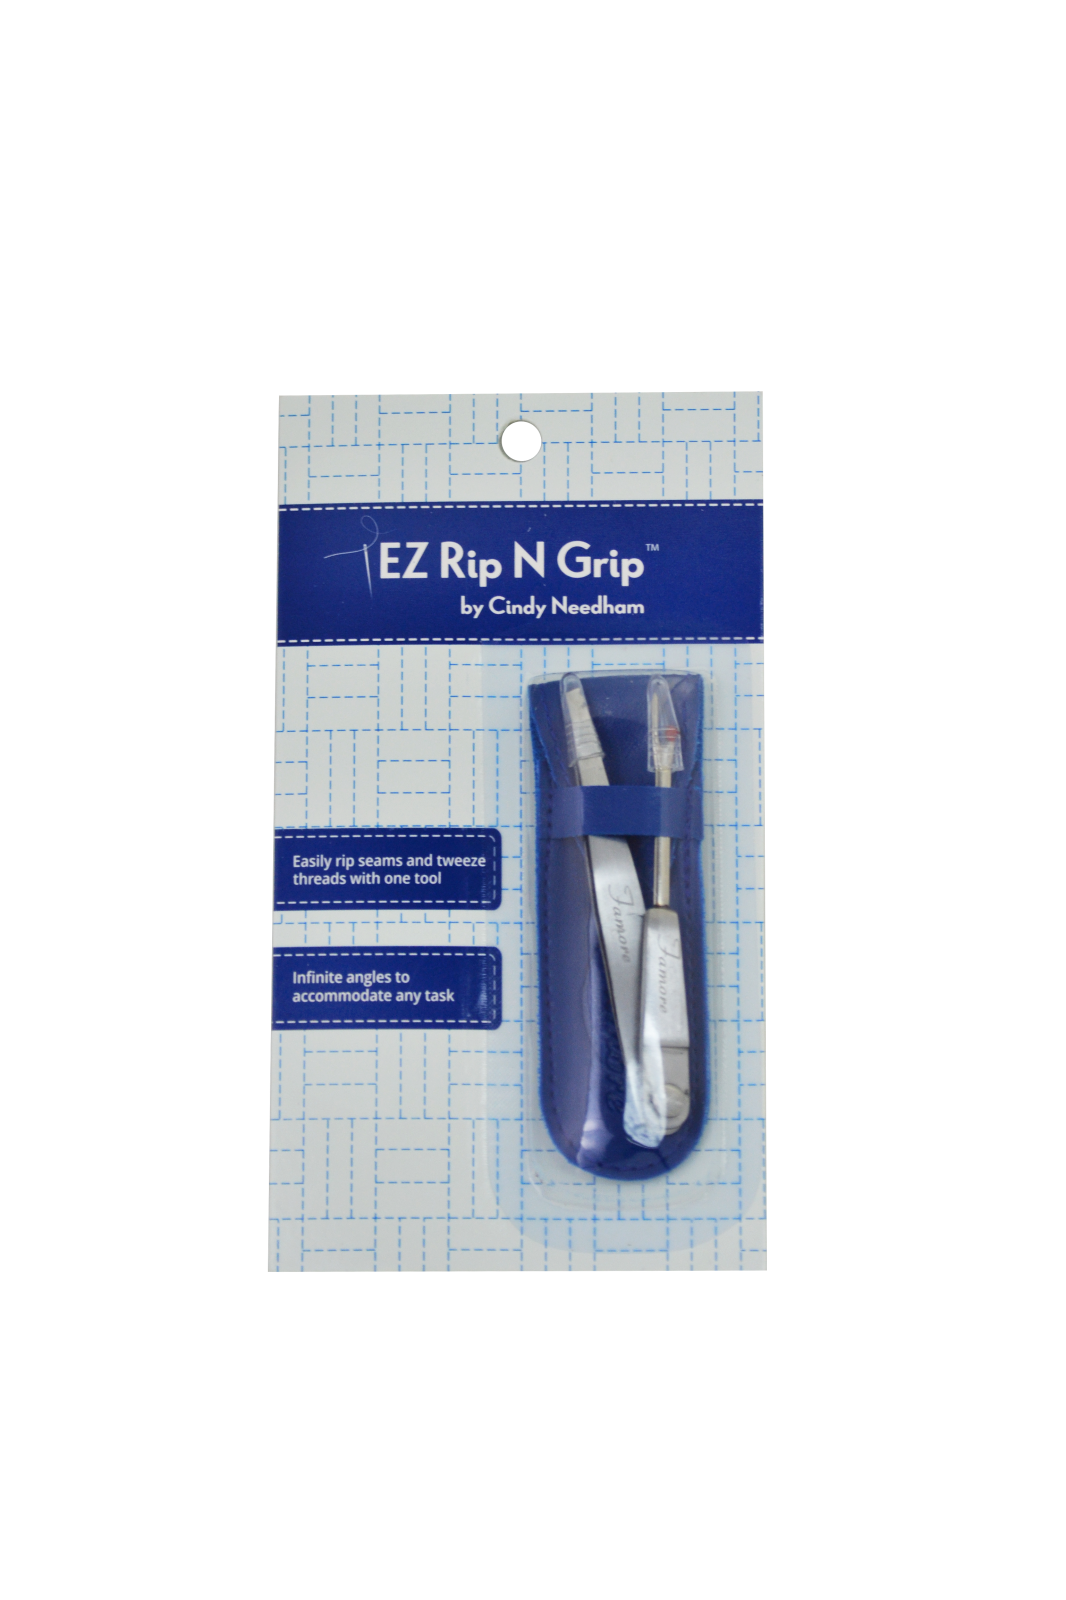 NEW EZ RipNGrip Tweezers Seam Ripper by Famore